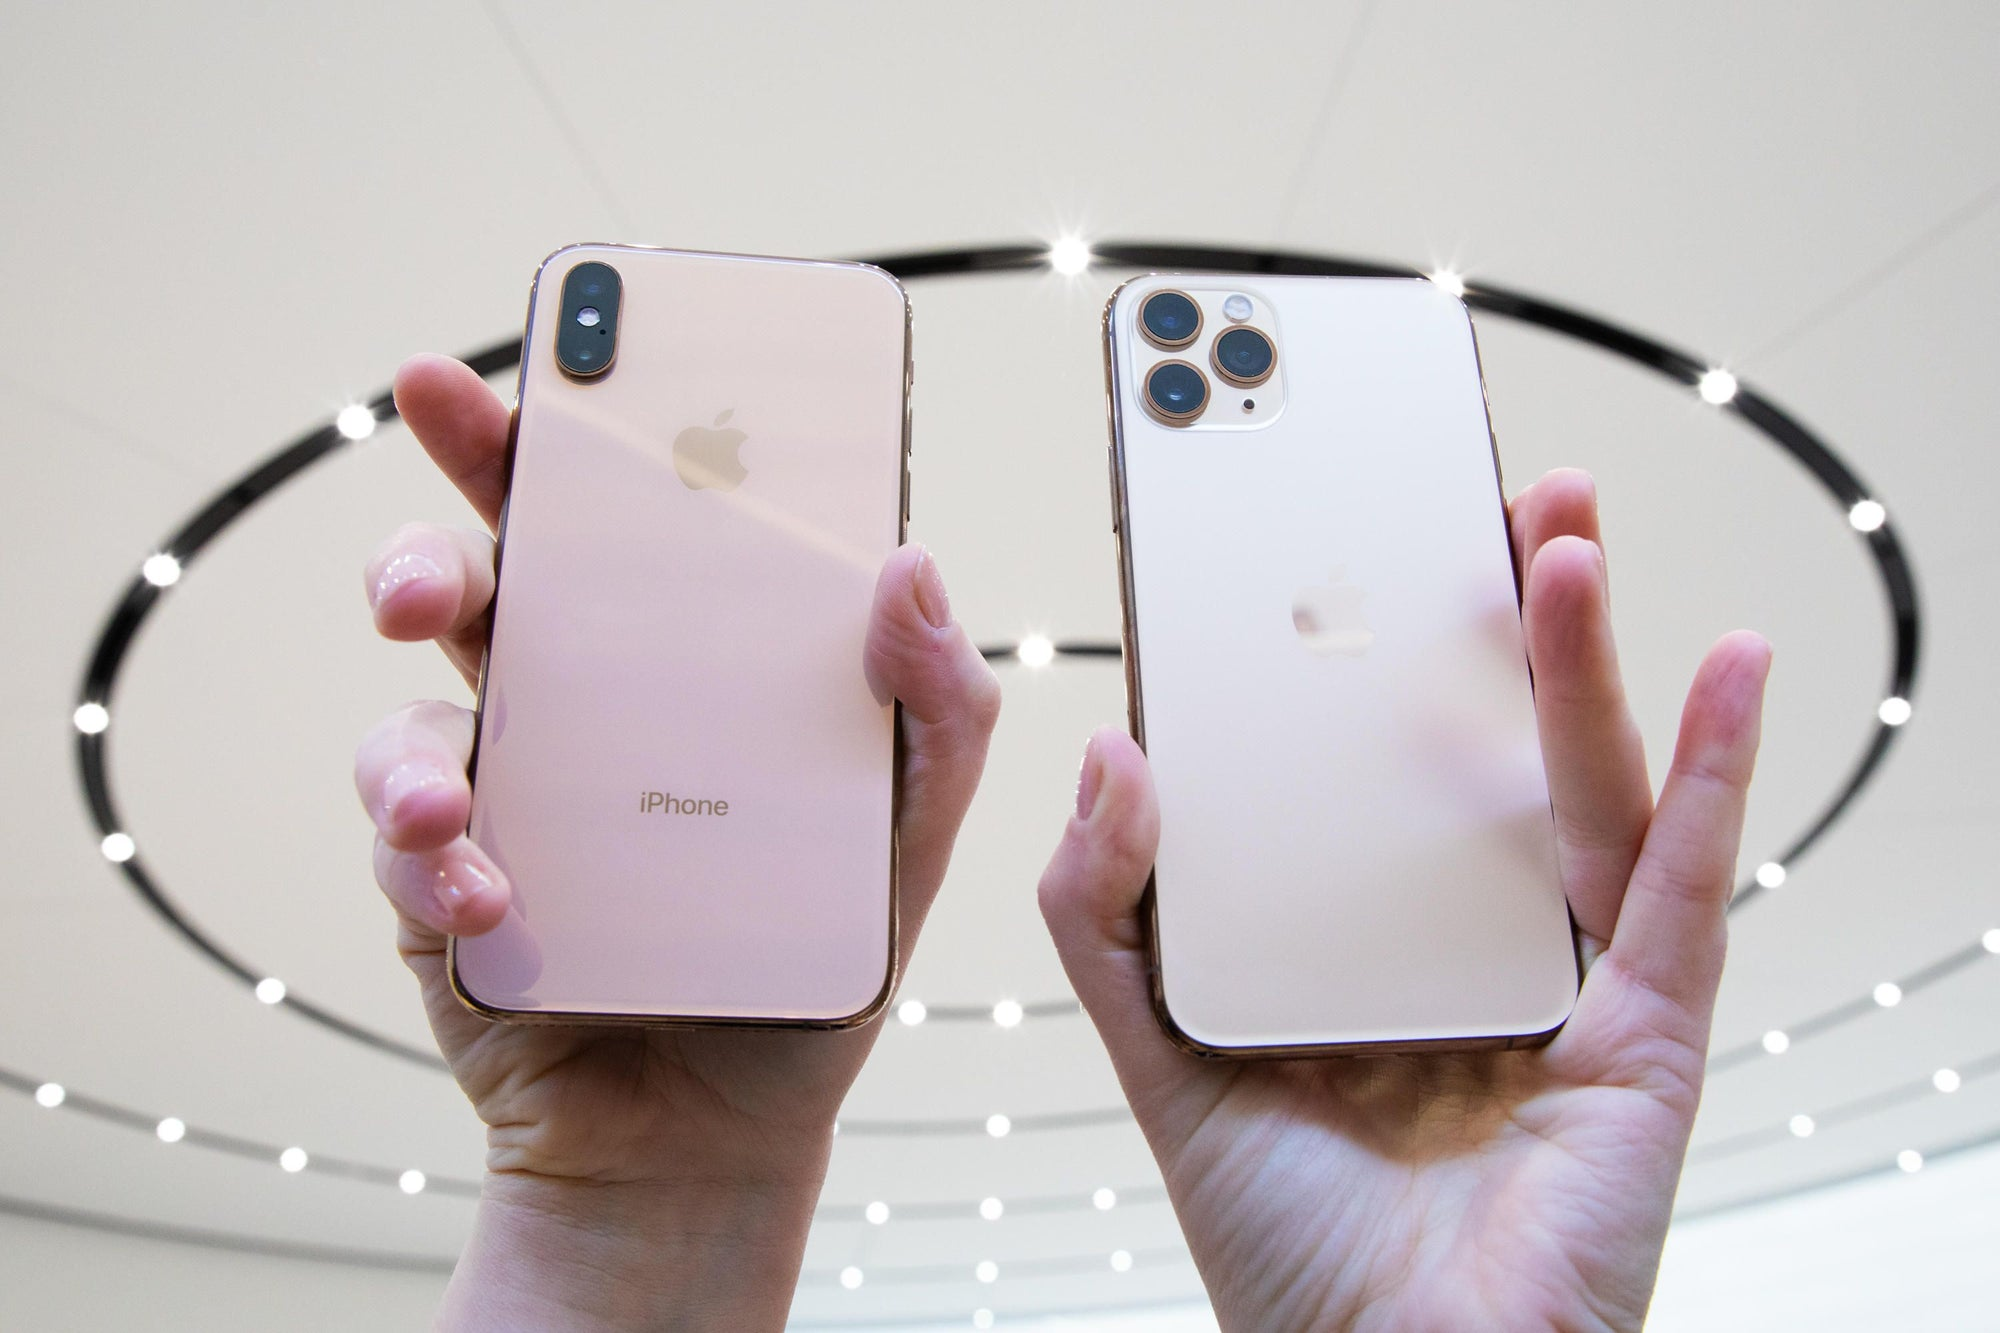 The iPhone standoff; iPhone 11 Pro or iPhone X?